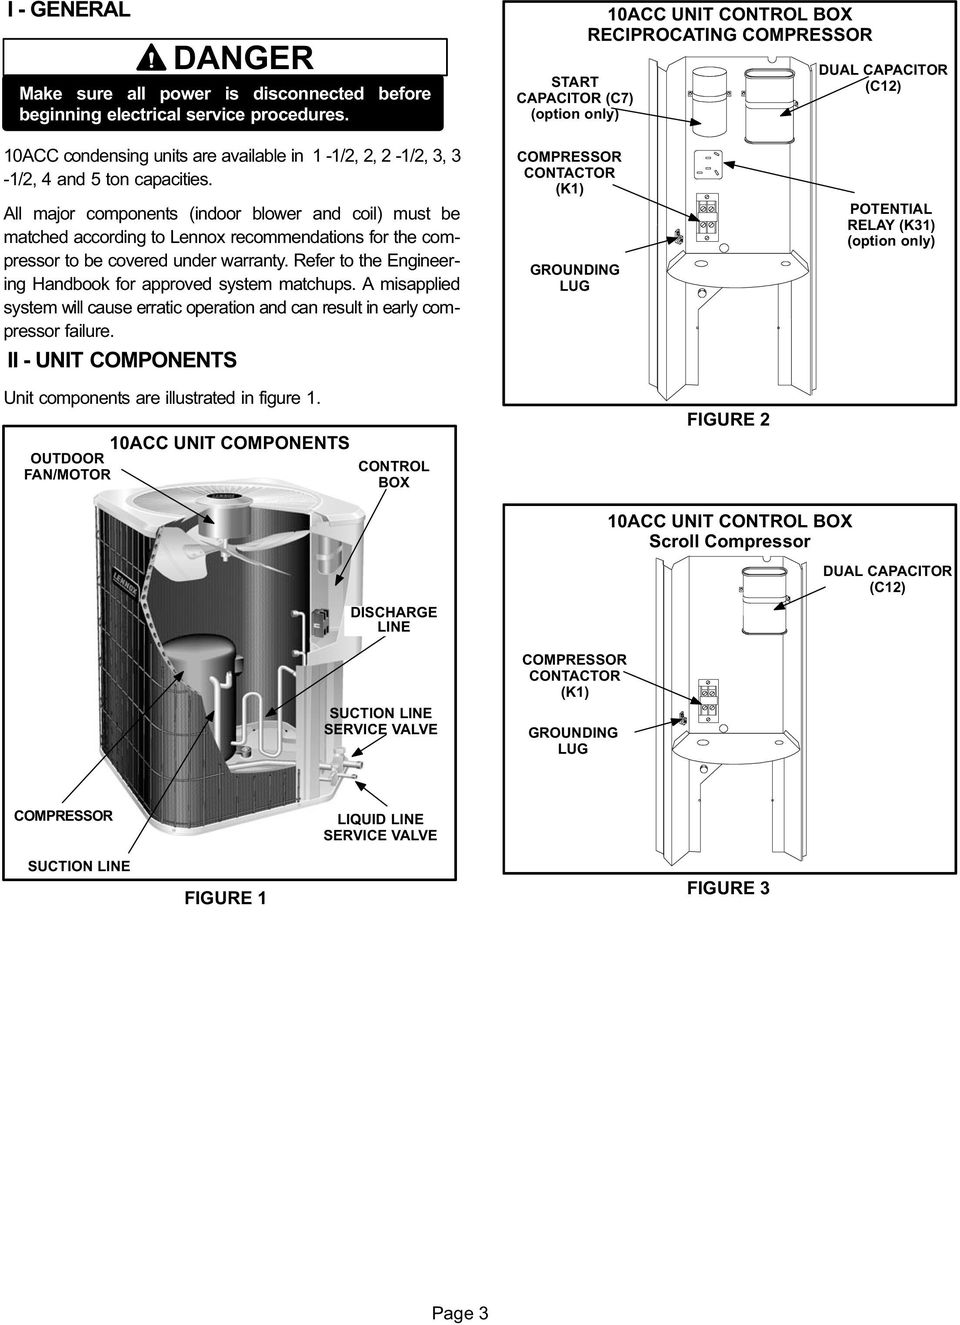 10acc Warning Service Literature Series Units Pdf Lennox Air Conditioner Wiring Diagram Free Download All Major Components Indoor Blower And Coil Must Be Matched According To Recommendations